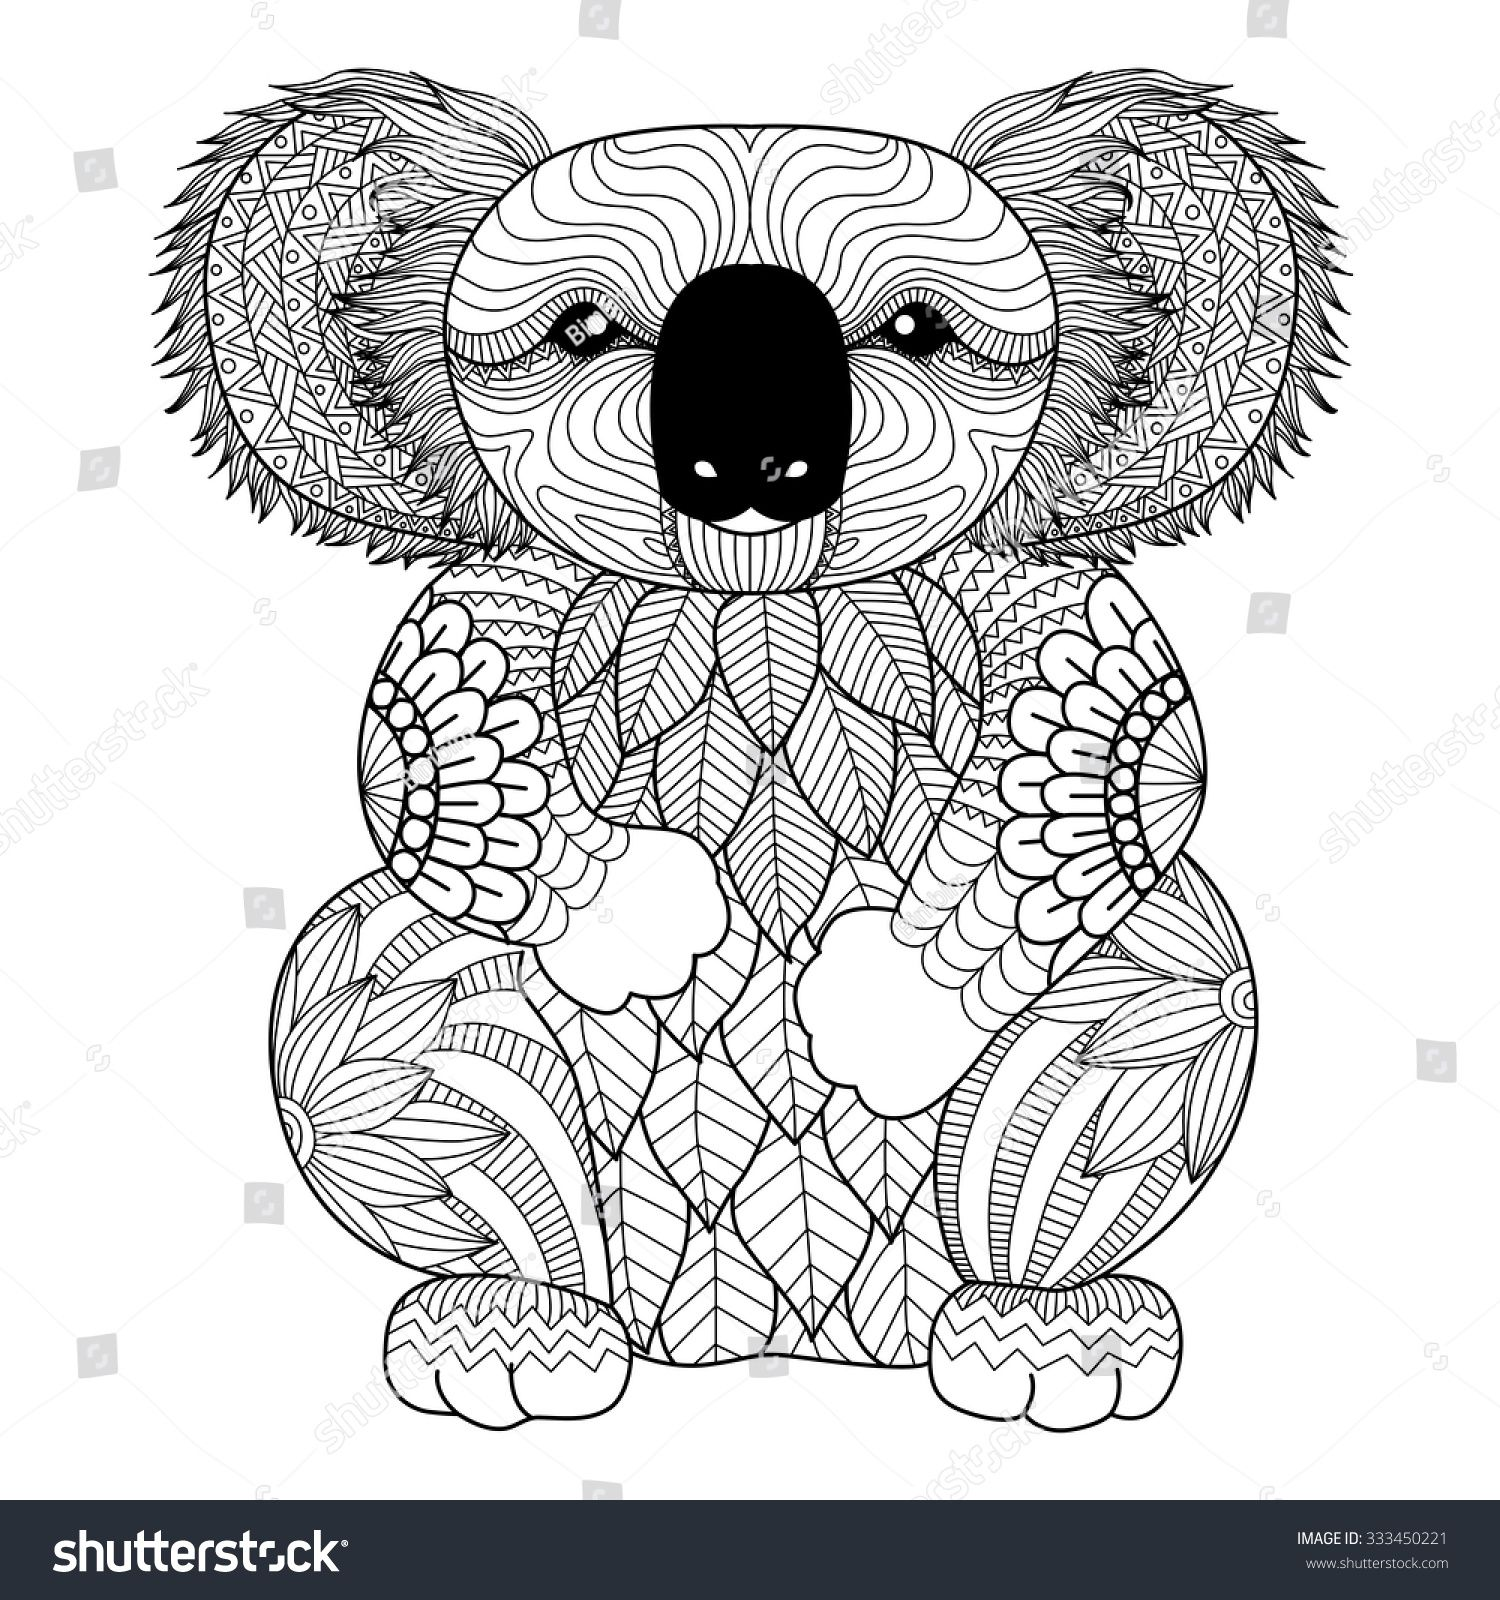 Drawing zentangle Koala for coloring page, shirt design effect, logo ...